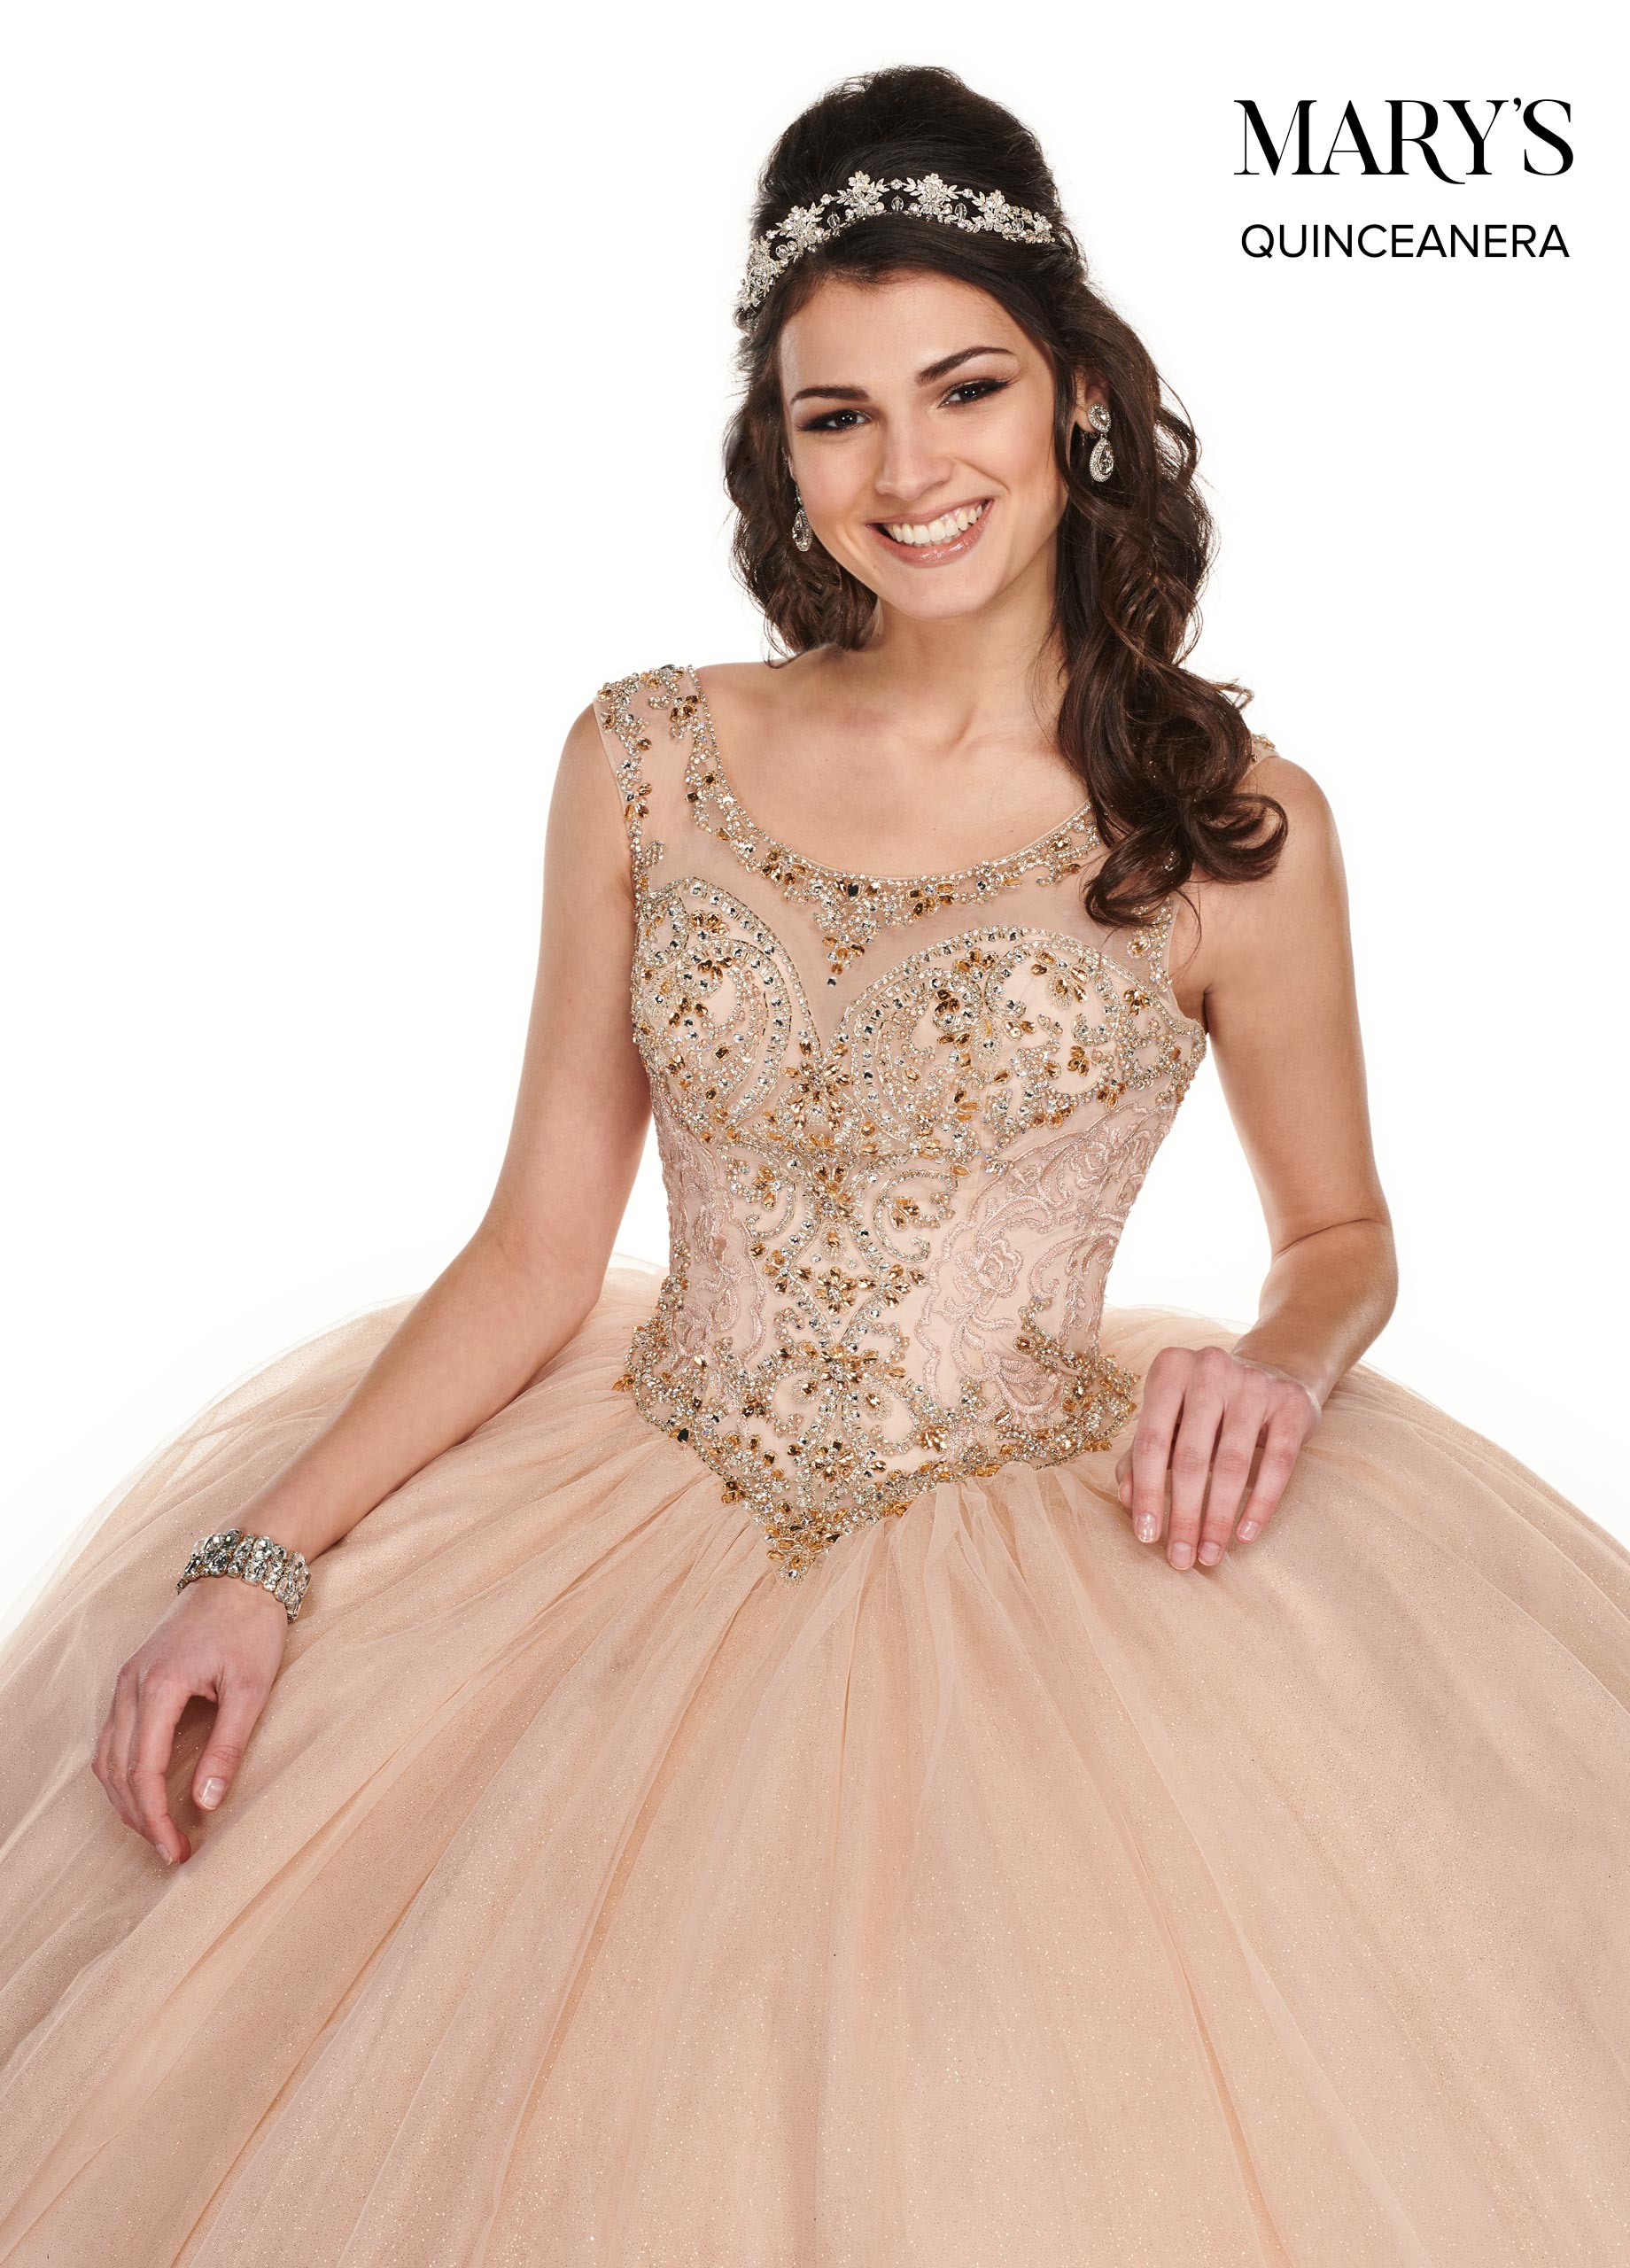 Marys Quinceanera Dresses | Mary's Quinceanera | Style - MQ1049